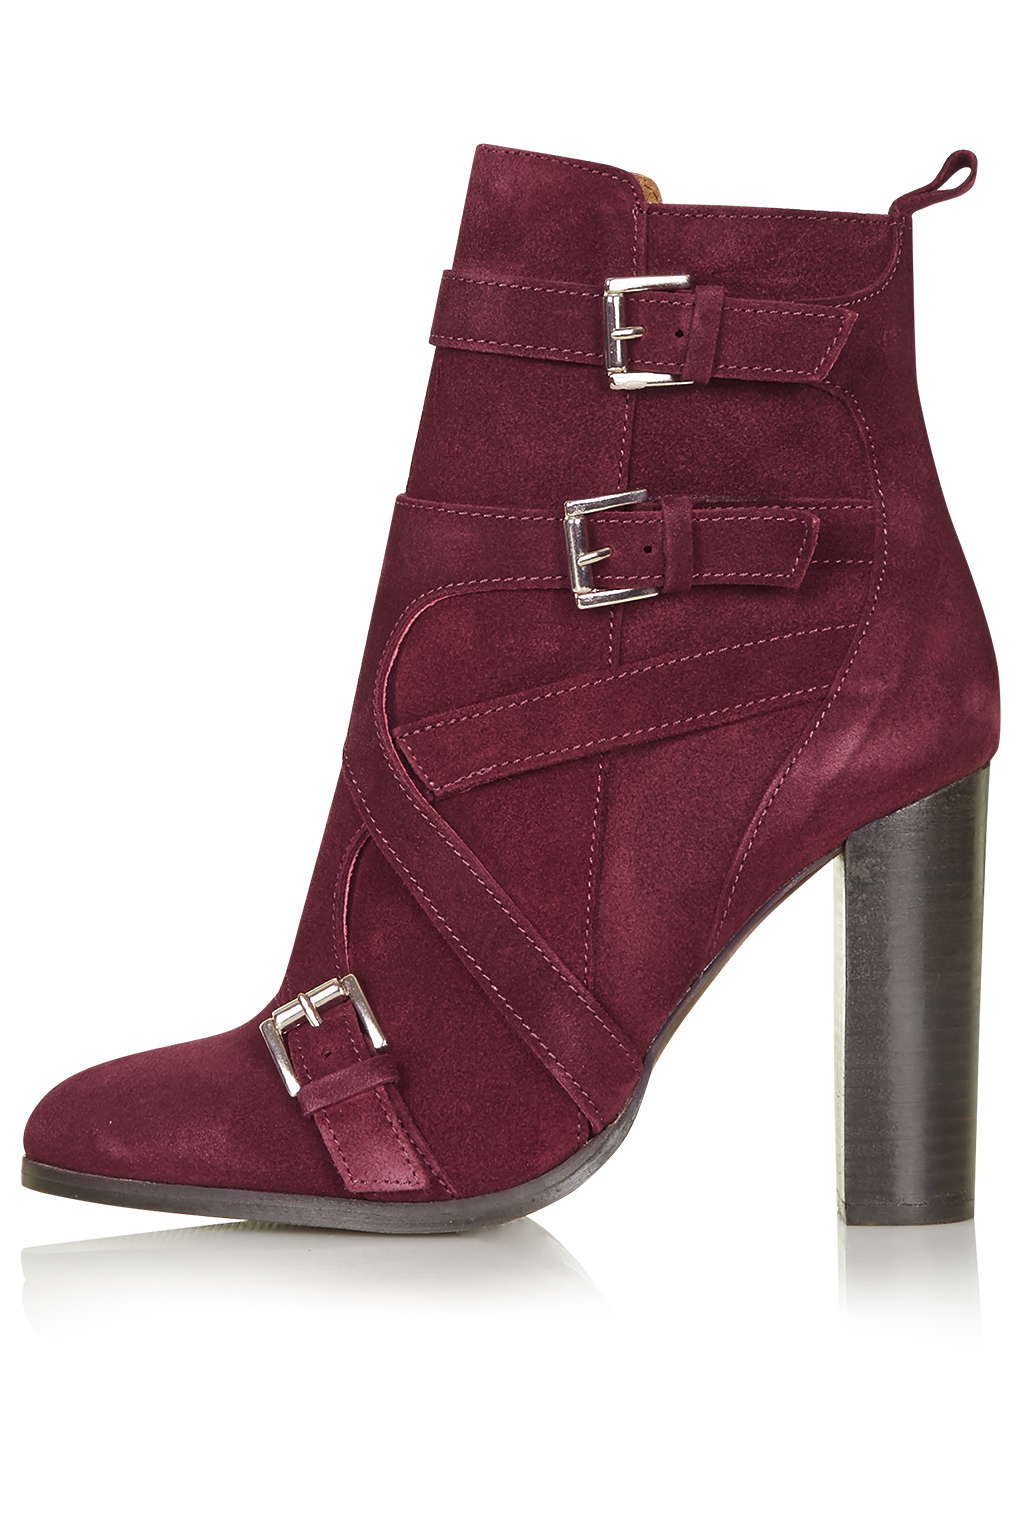 HARRISON Buckle Strap Boots | Bewitching Bohemian Fall Style